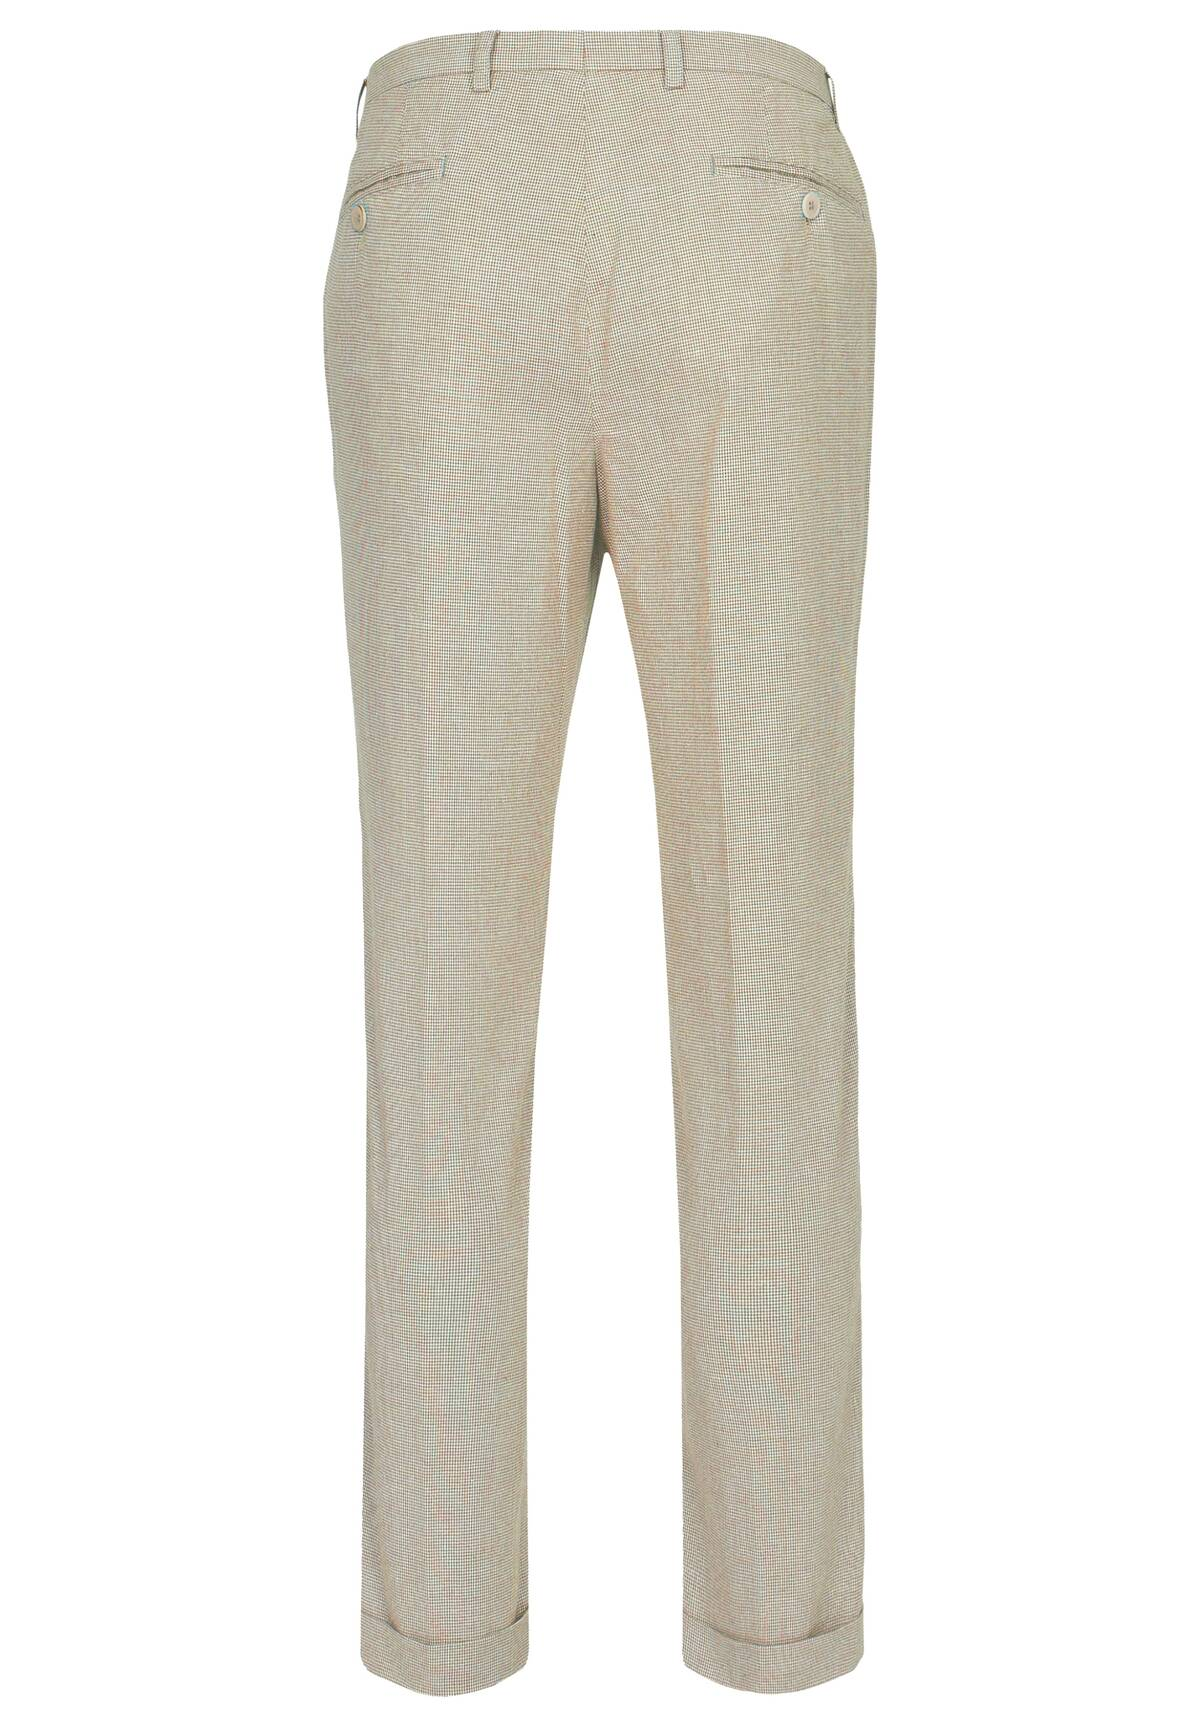 DH-ECO Pantalon de costume /